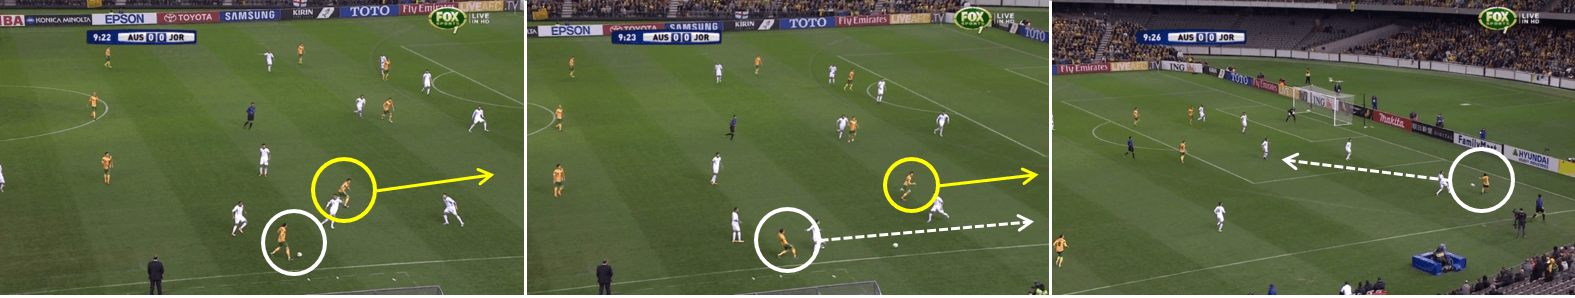 White indicates Wilkshire, yellow Kruse. Dotted line for a pass, solid for a run. Note how deep the left-sided Jordan centre-back is.